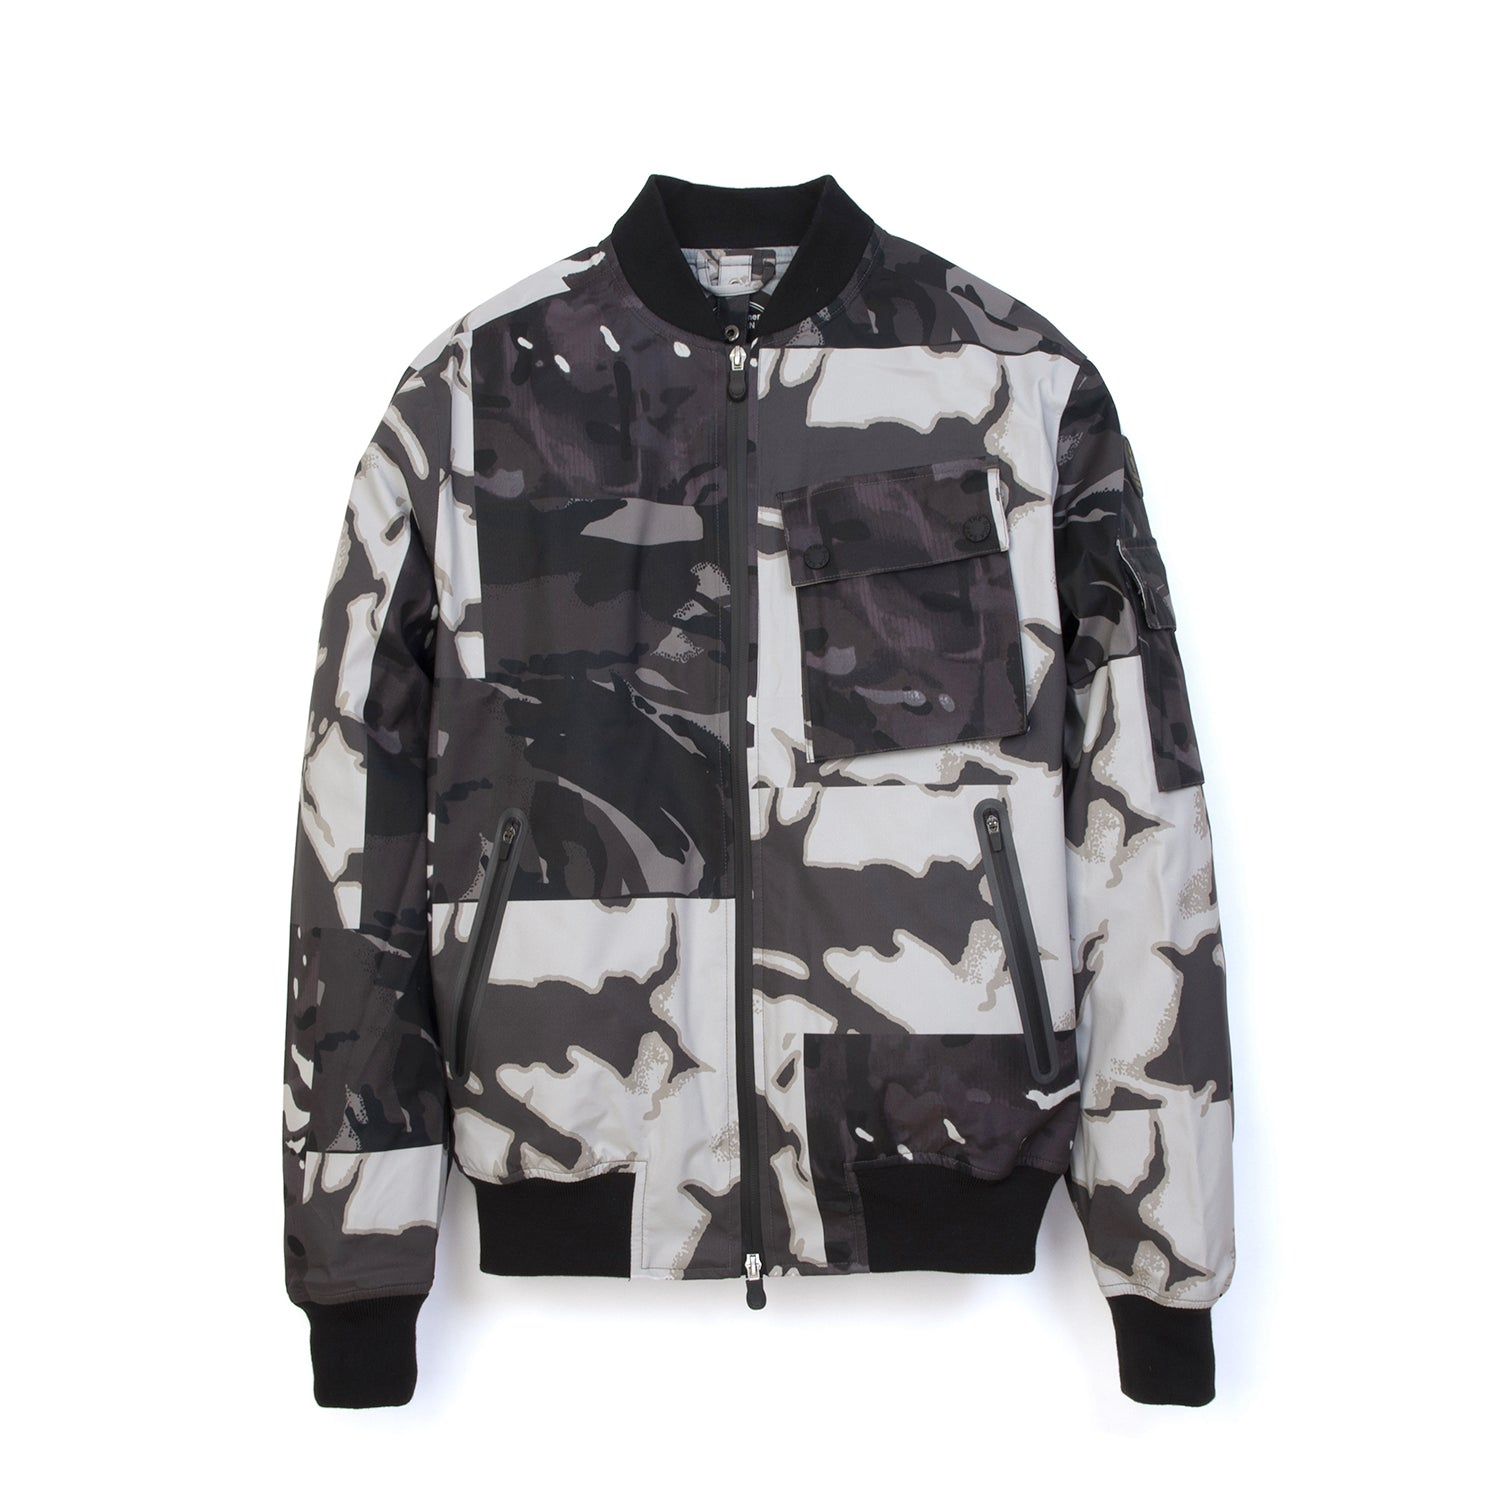 Christopher Raeburn x Save The Duck Woven Jacket FLAG6 Cage